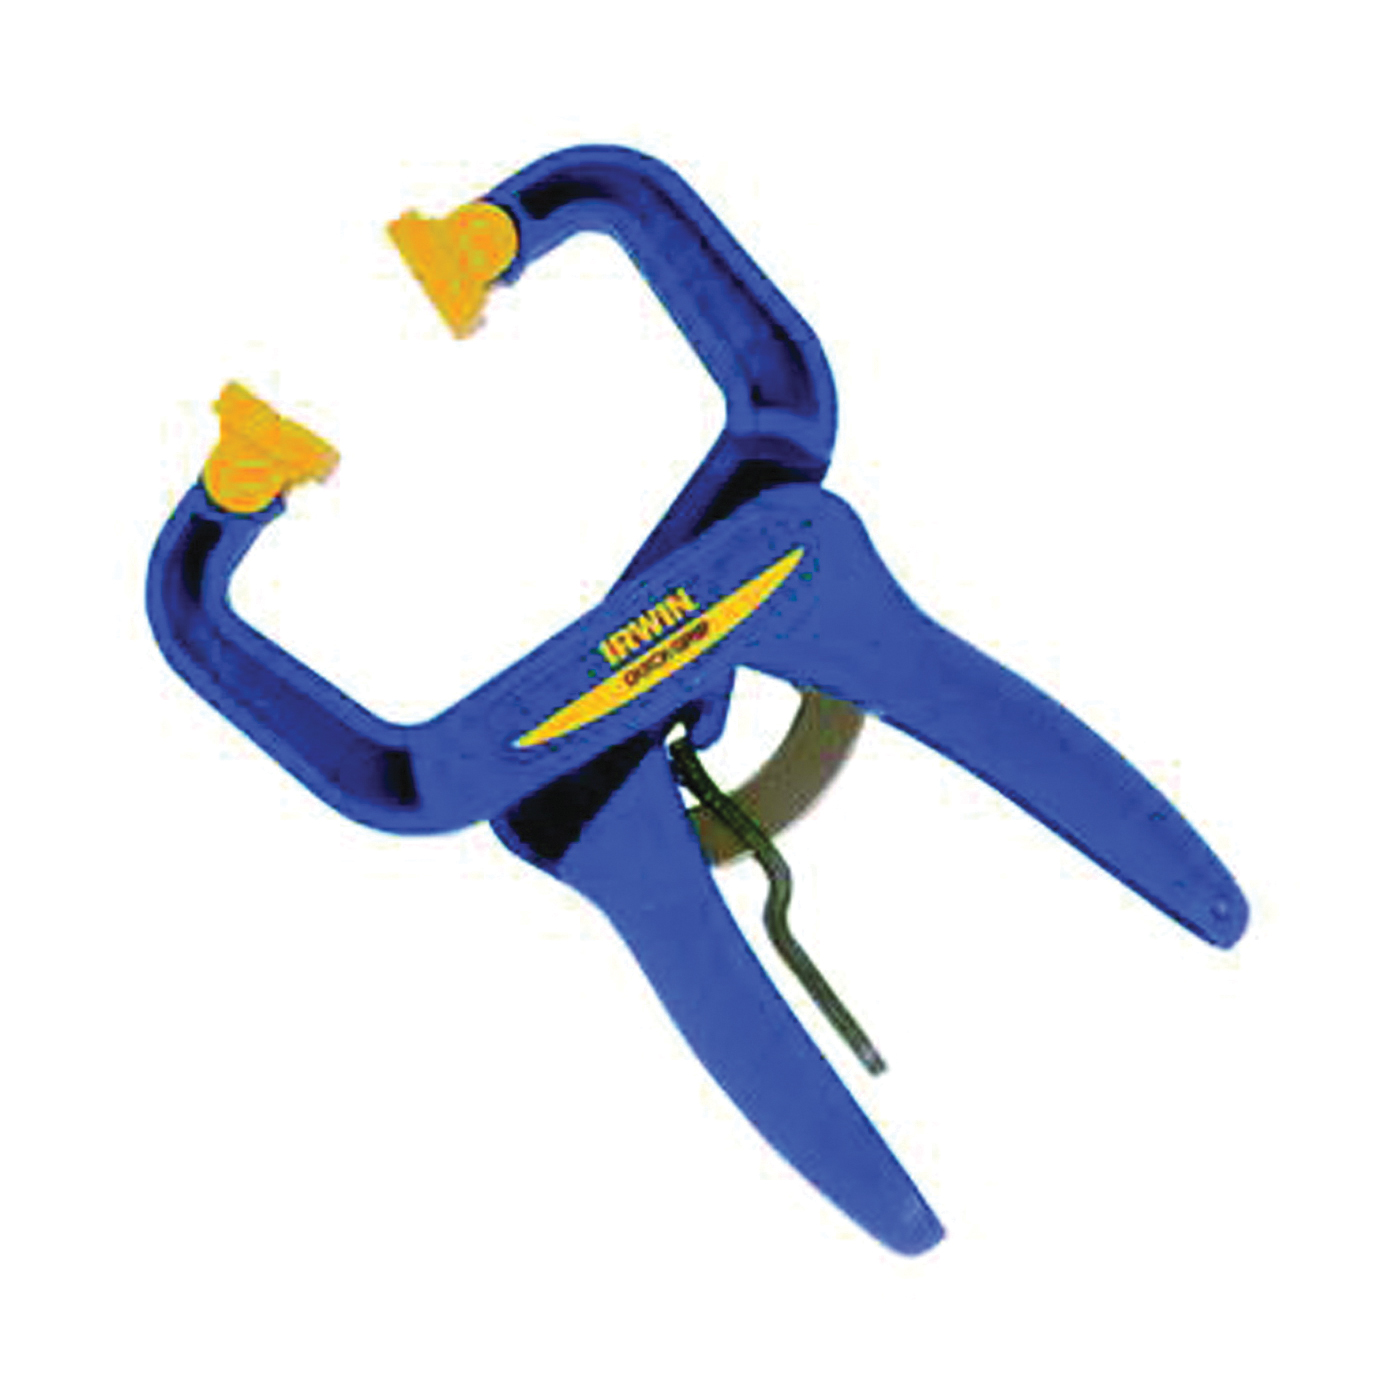 Picture of IRWIN 59100CD Handi-Clamp, 75 lb Clamping, 1-1/2 in Max Opening Size, 1-1/2 in D Throat, Resin Body